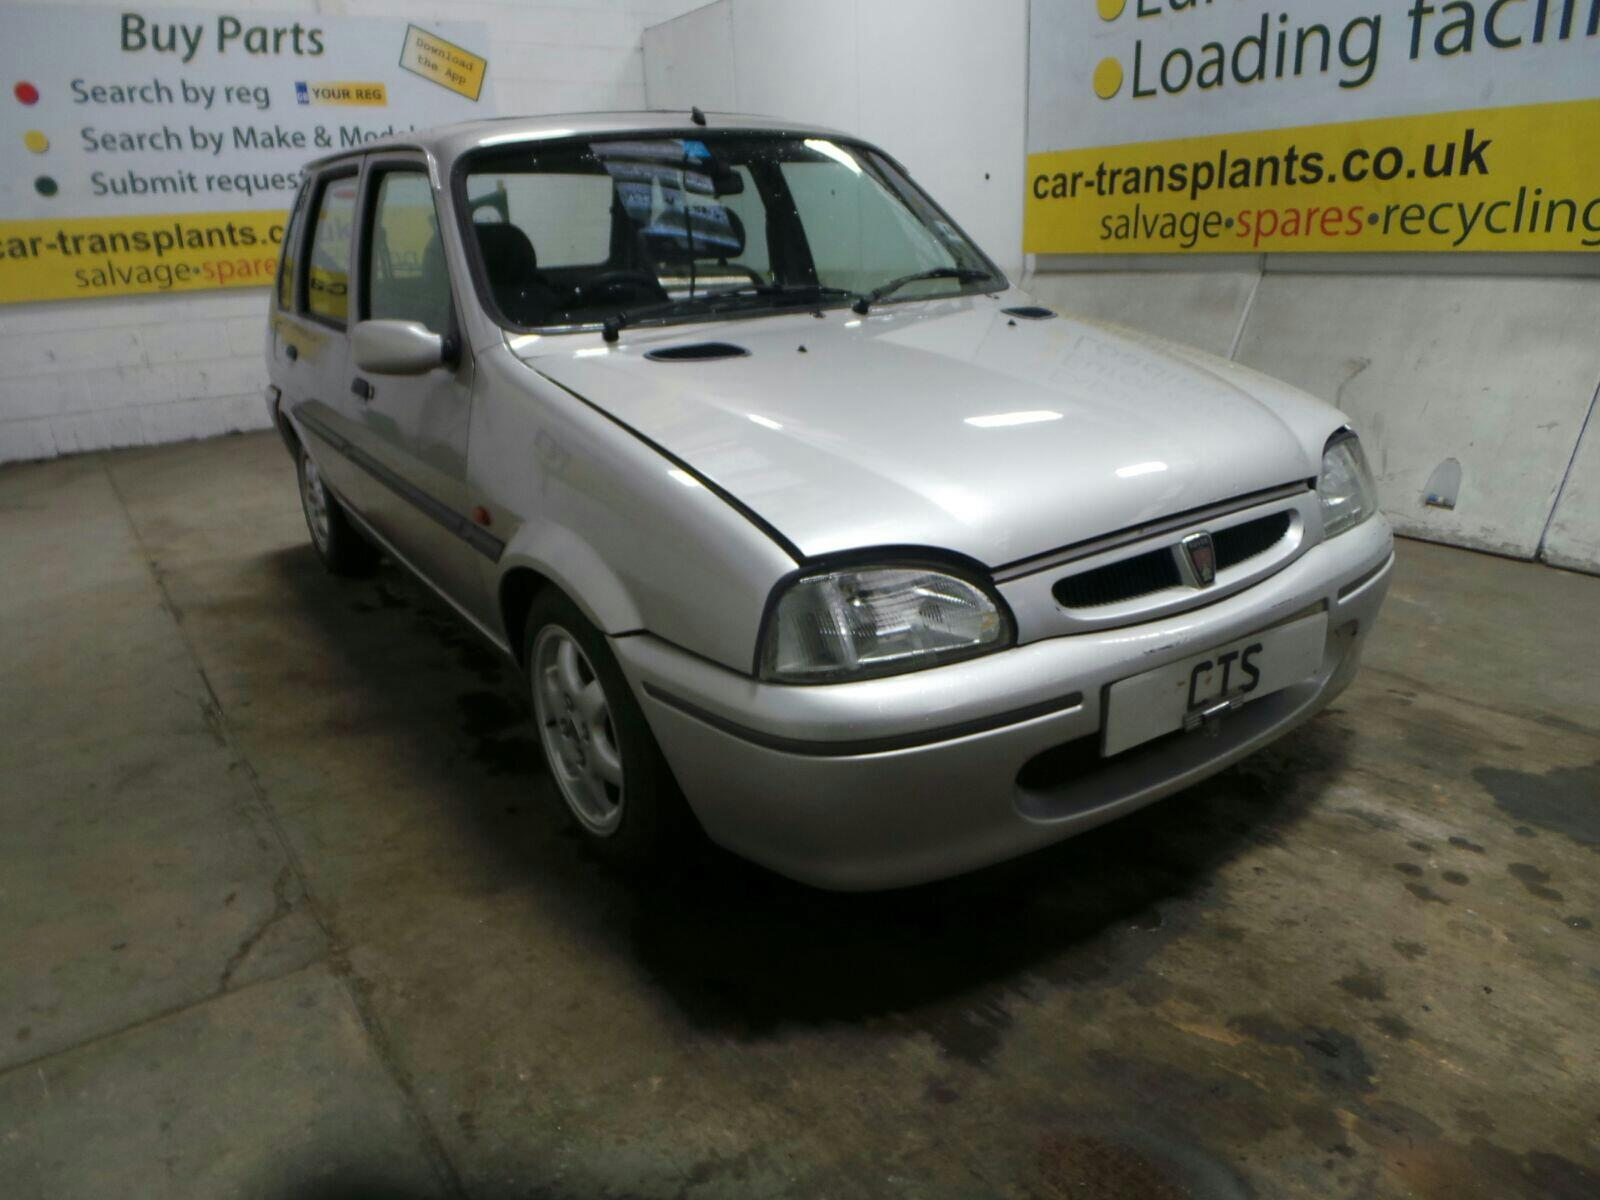 1996 Rover 100 1994 To 1999 5 Door Hatchback